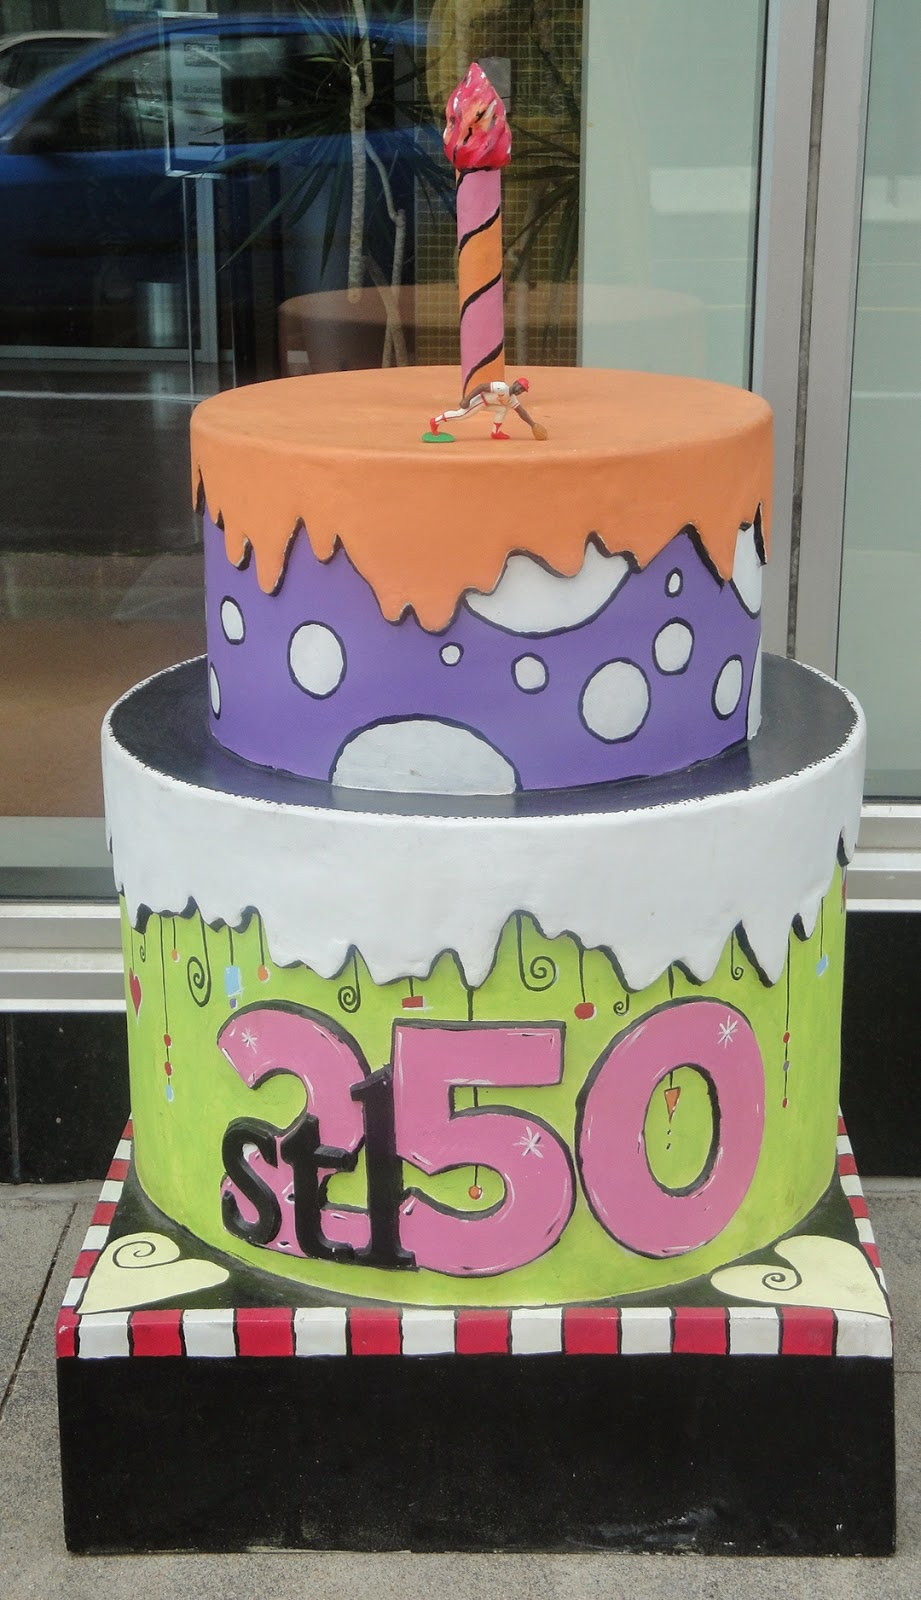 St Louis 250 Years 250 Cakes Here we go 92 Big Brothers